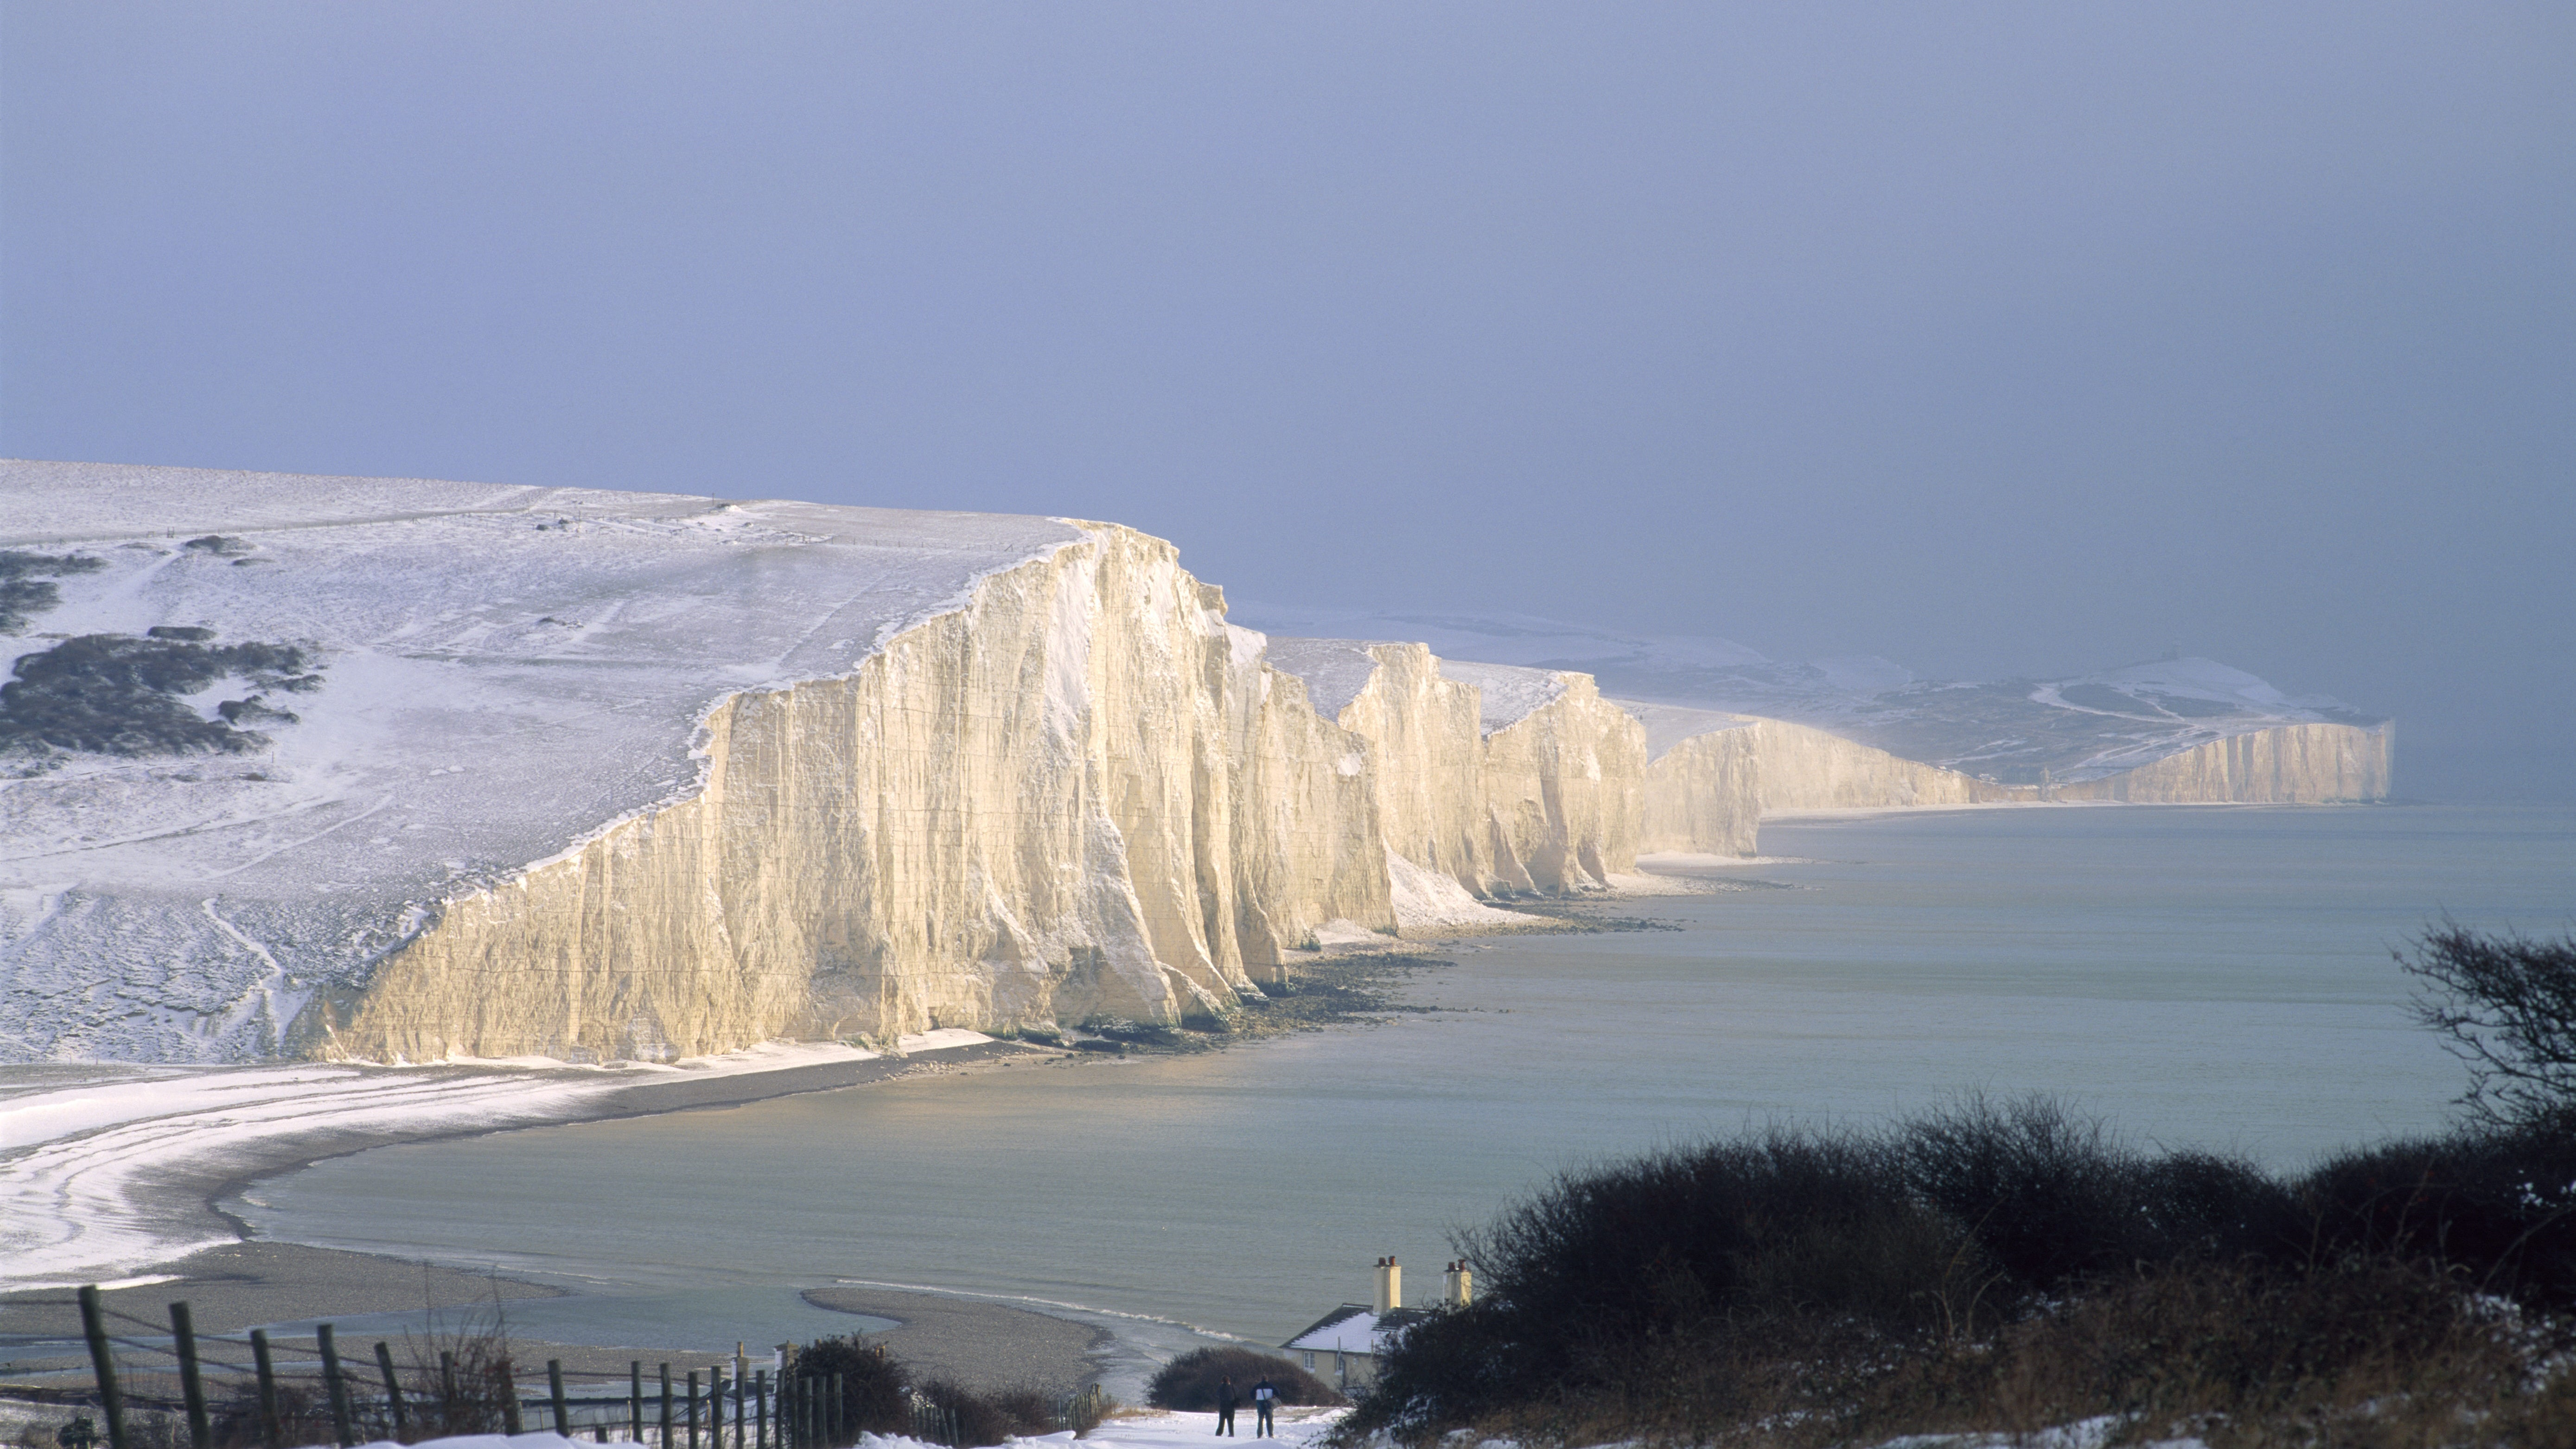 Snowy view over the Seven Sisters cliffs